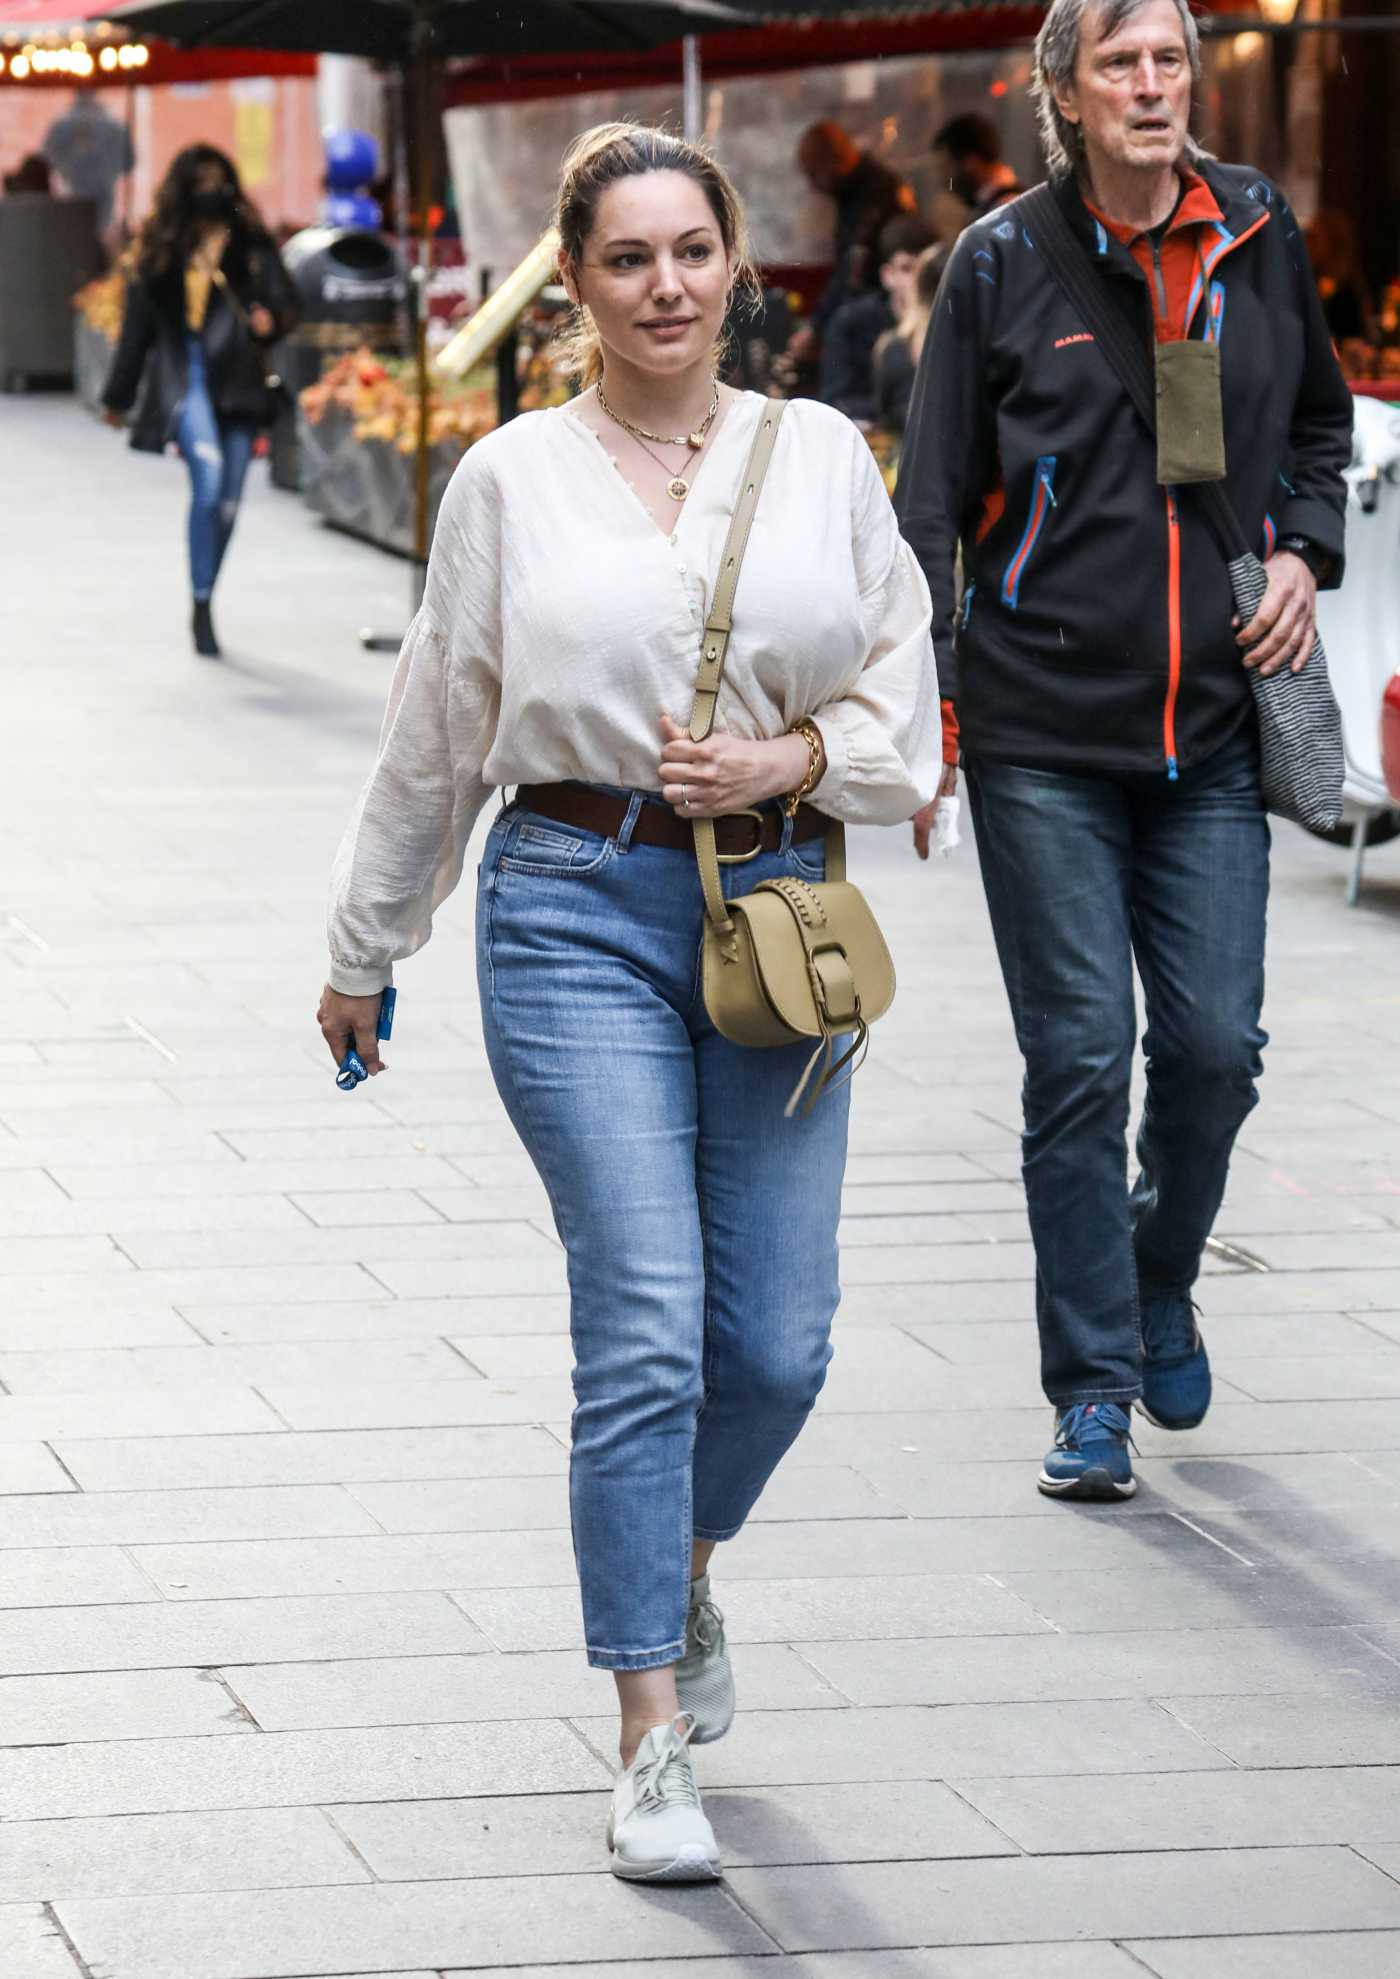 Kelly Brook in a White Blouse Arrives at the Global Radio Studios in London 05/19/2021